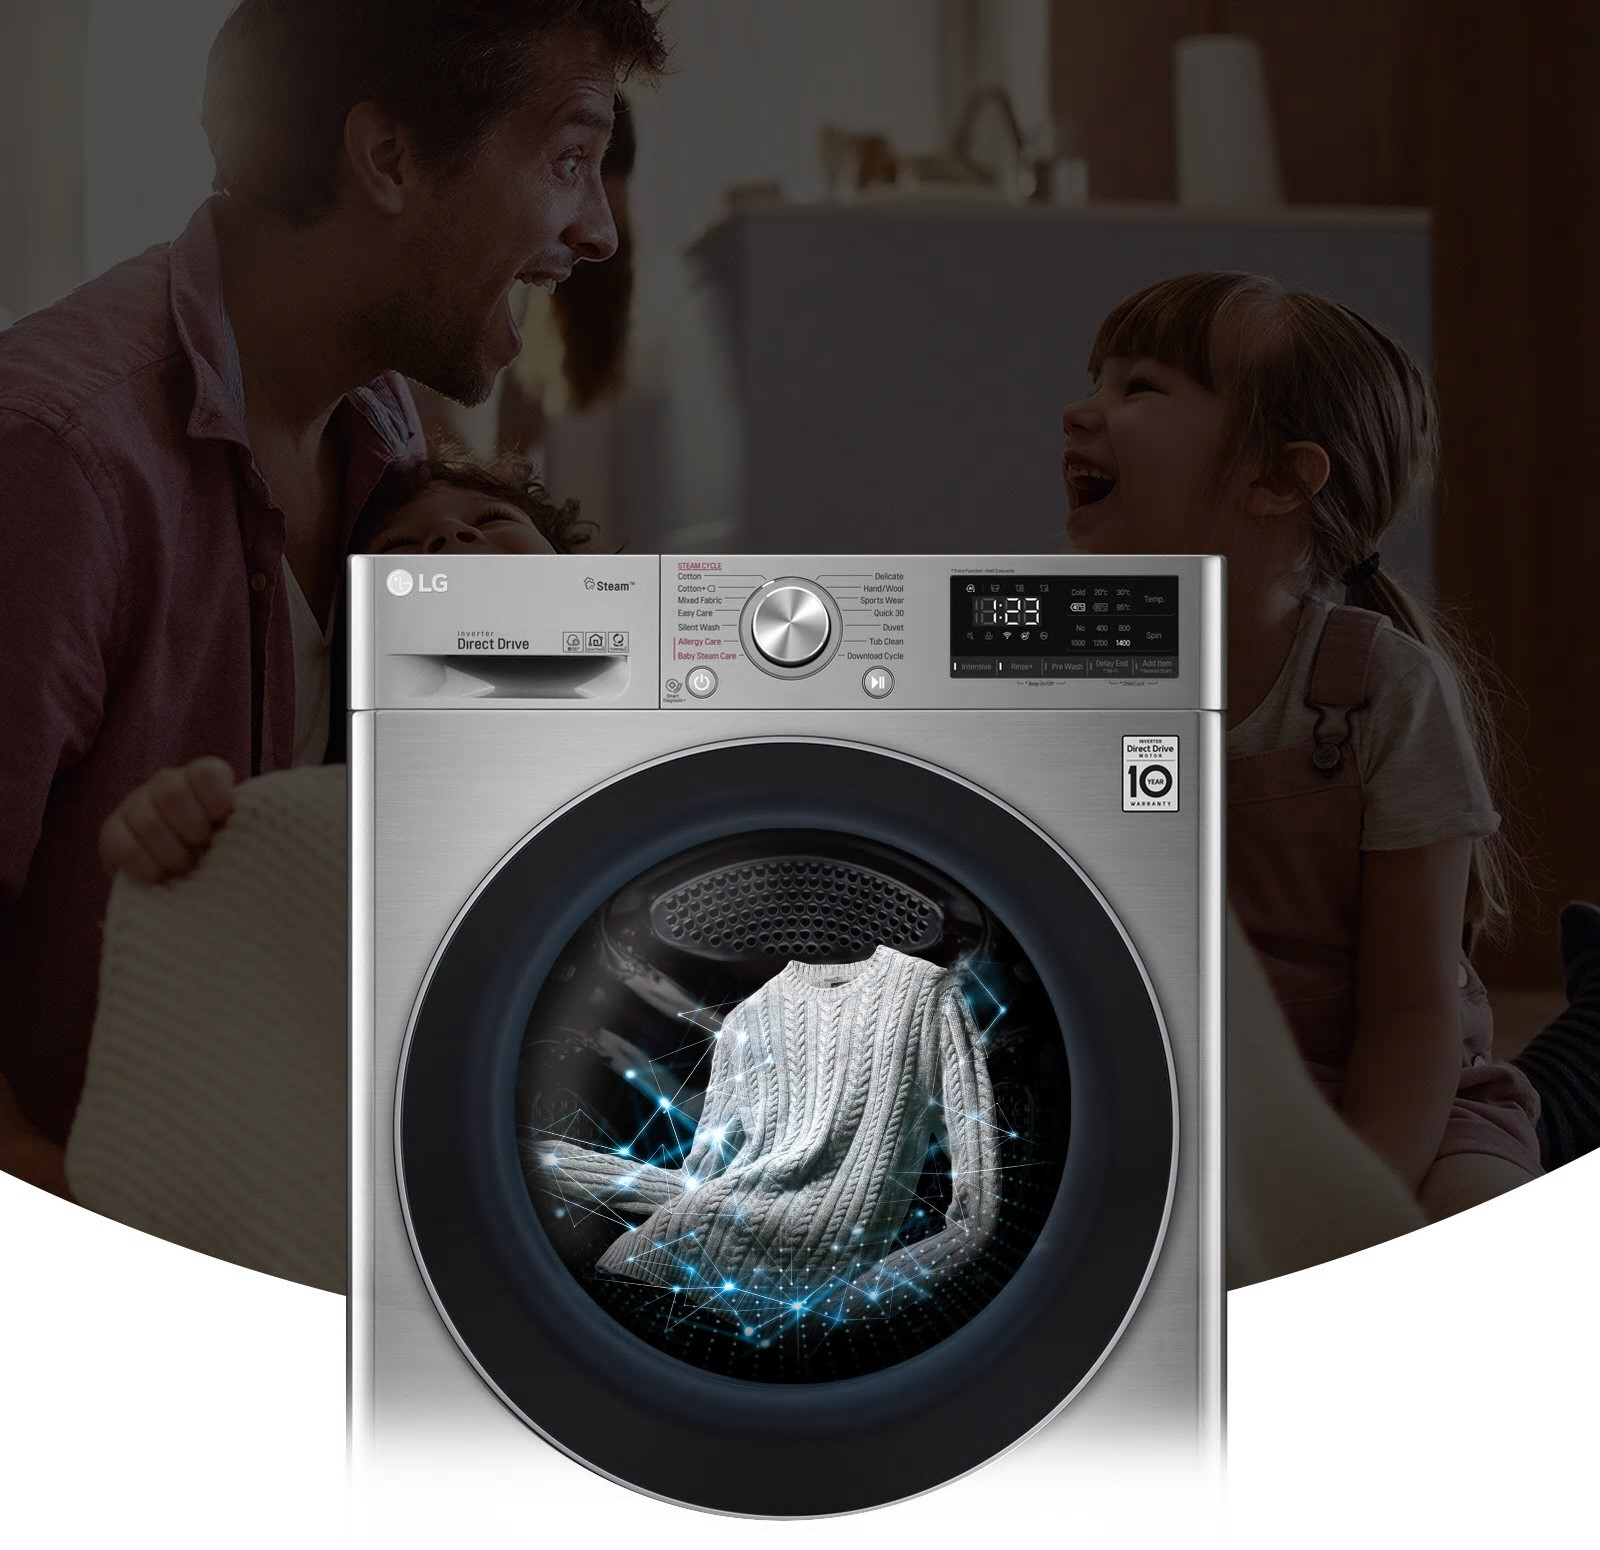 With LG, style and safety begins at home